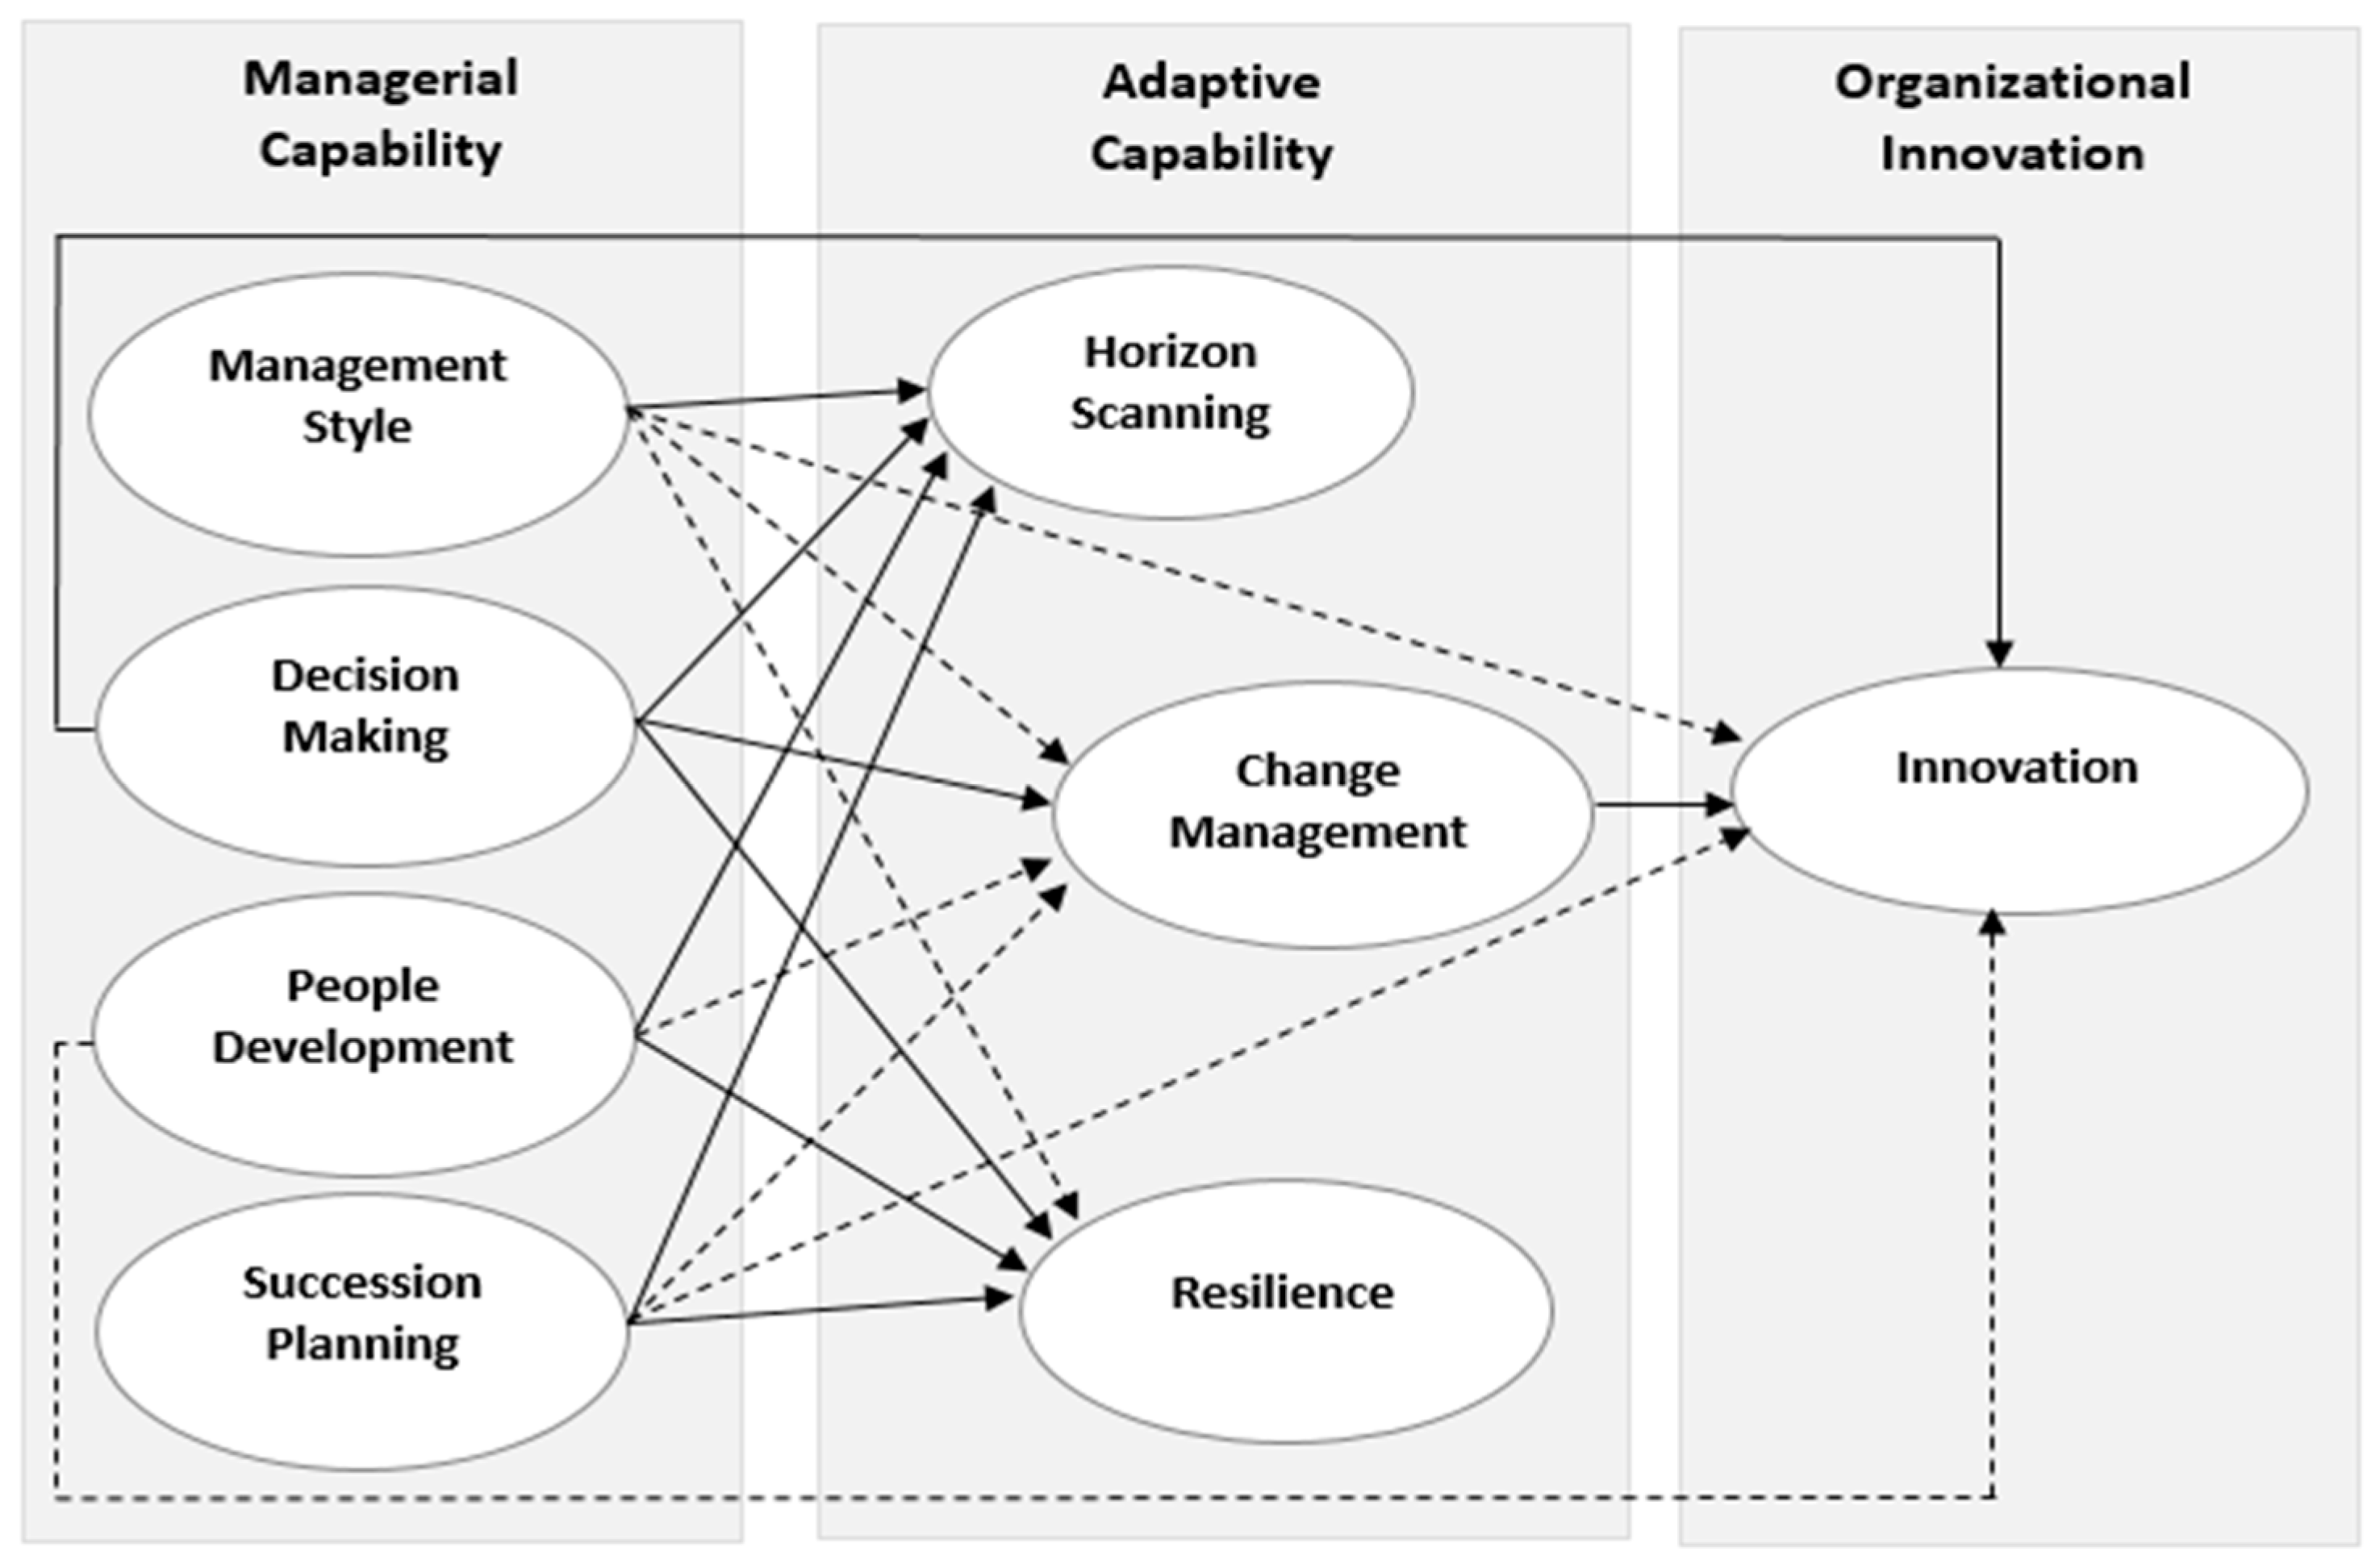 Sustainability free full text the impact of managerial and sustainability 09 02157 g001 fandeluxe Choice Image